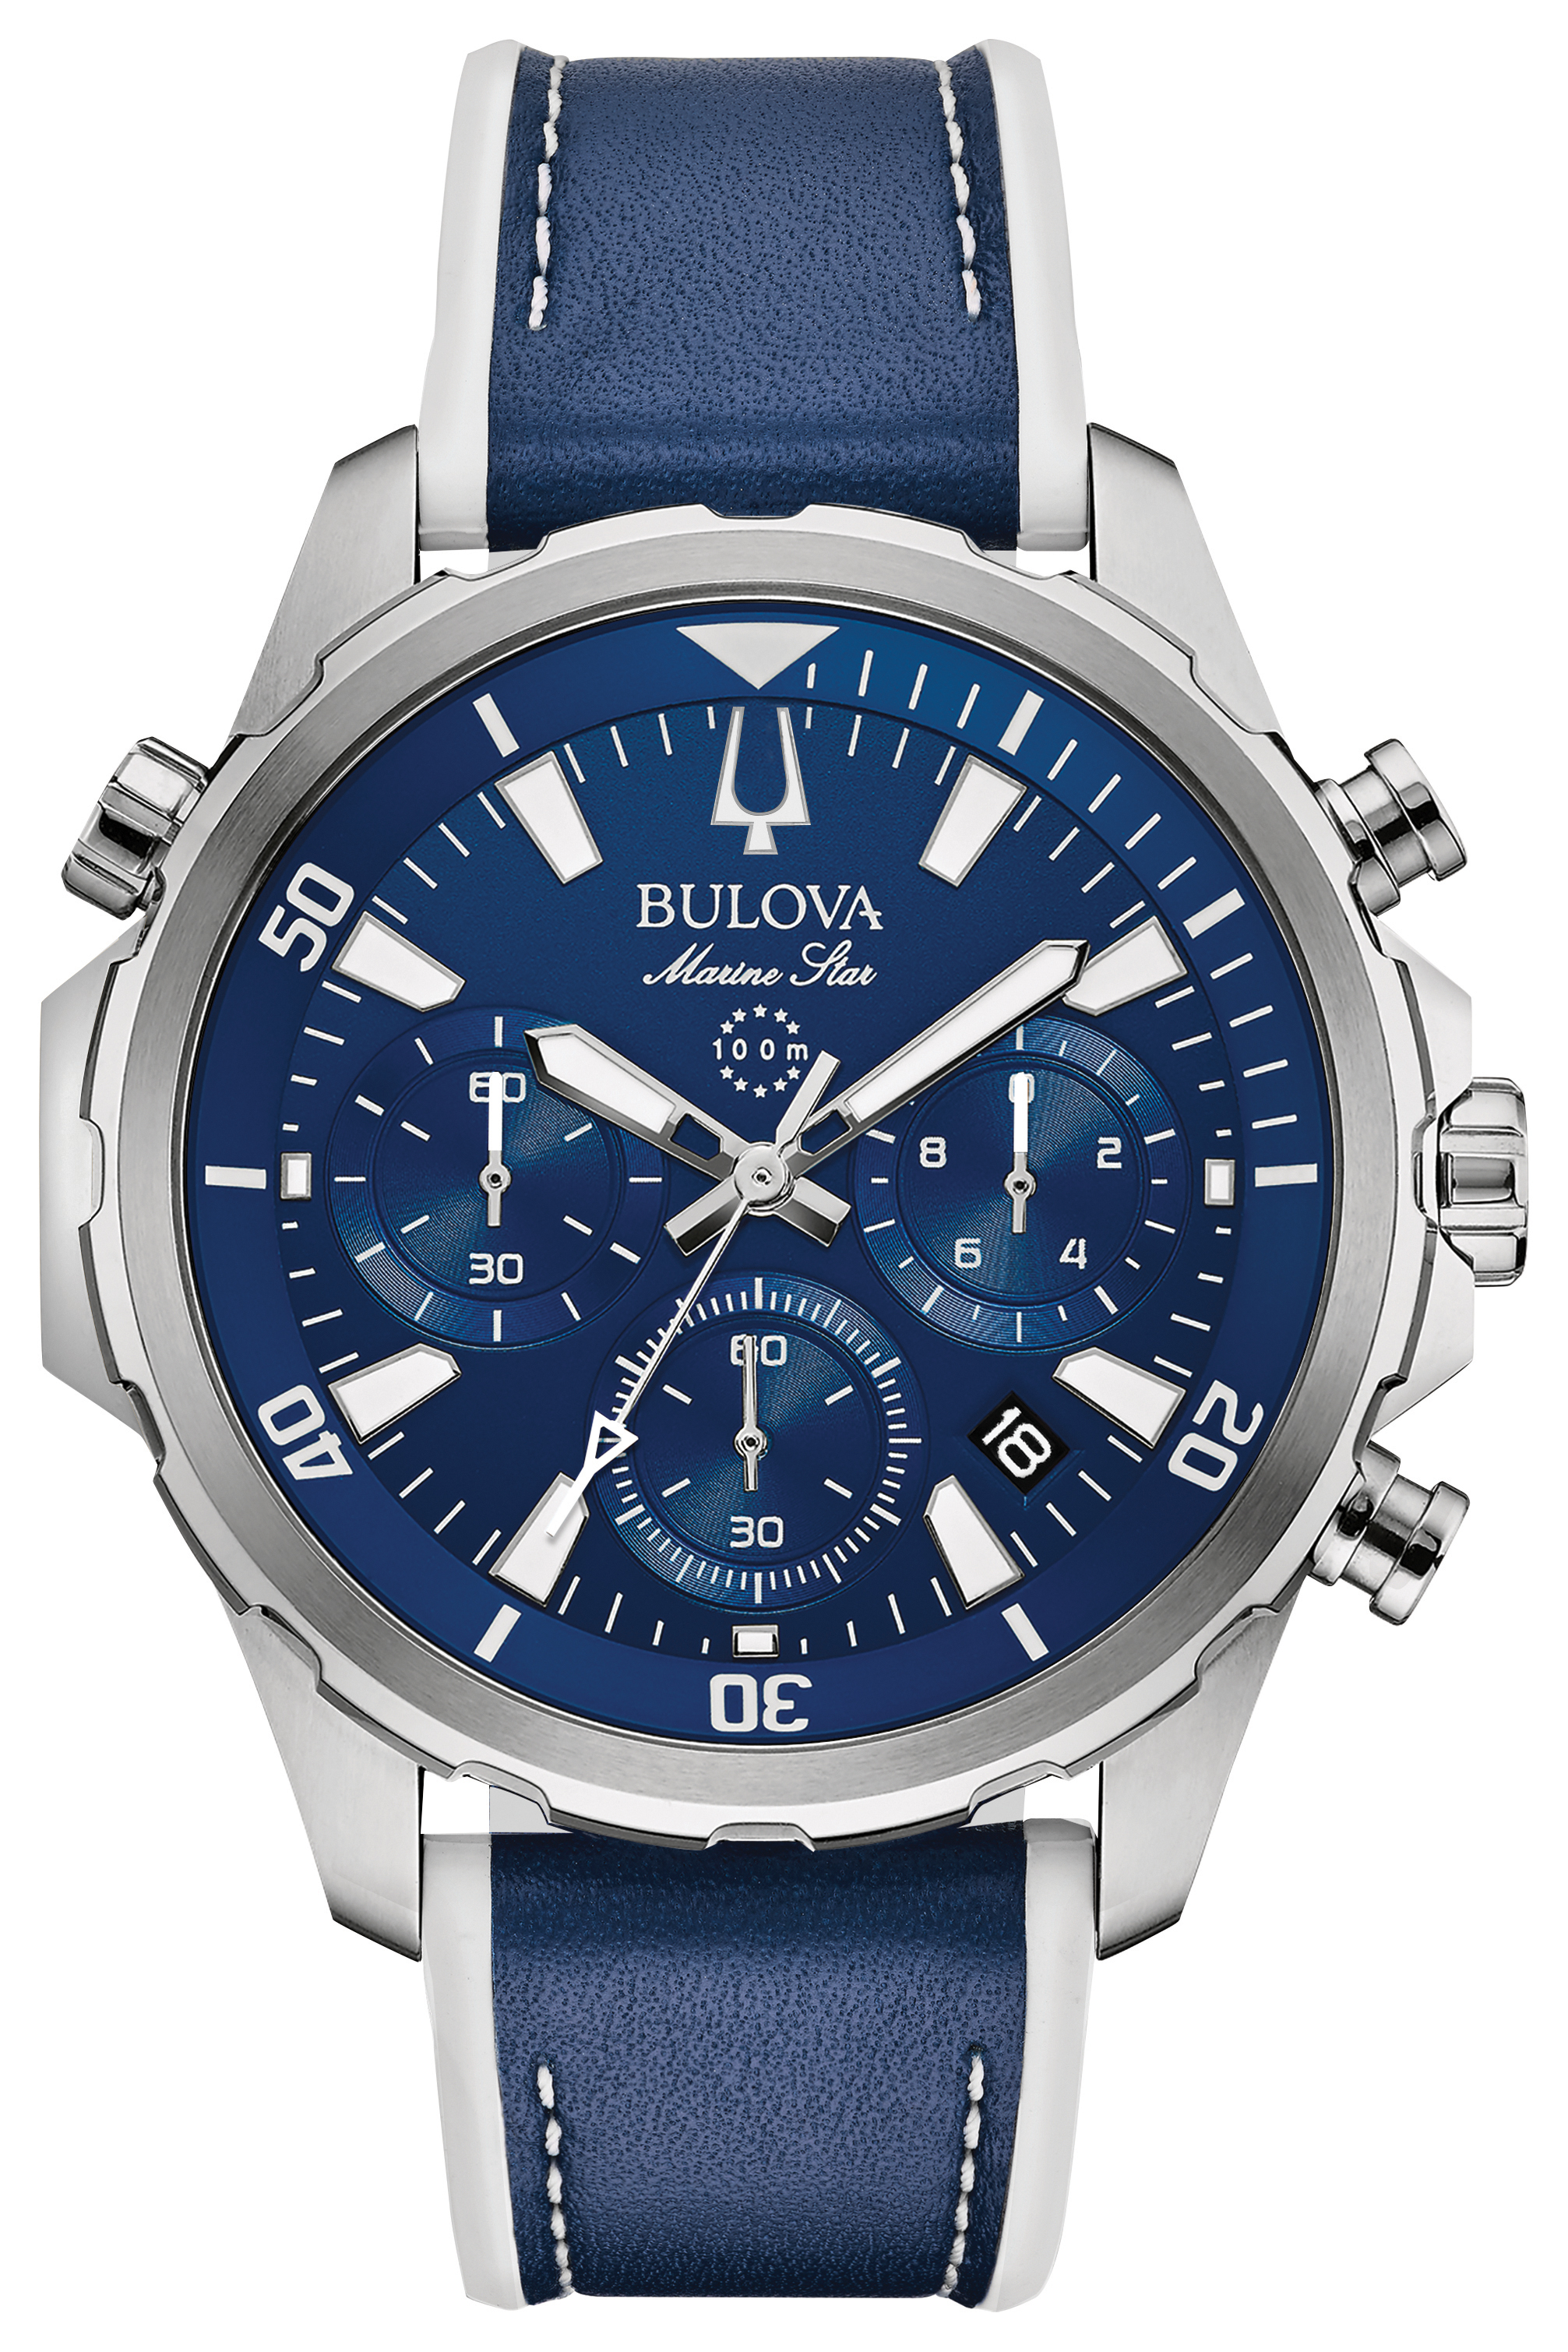 Bulova Watch for Man - Stainless steel & Blue dial